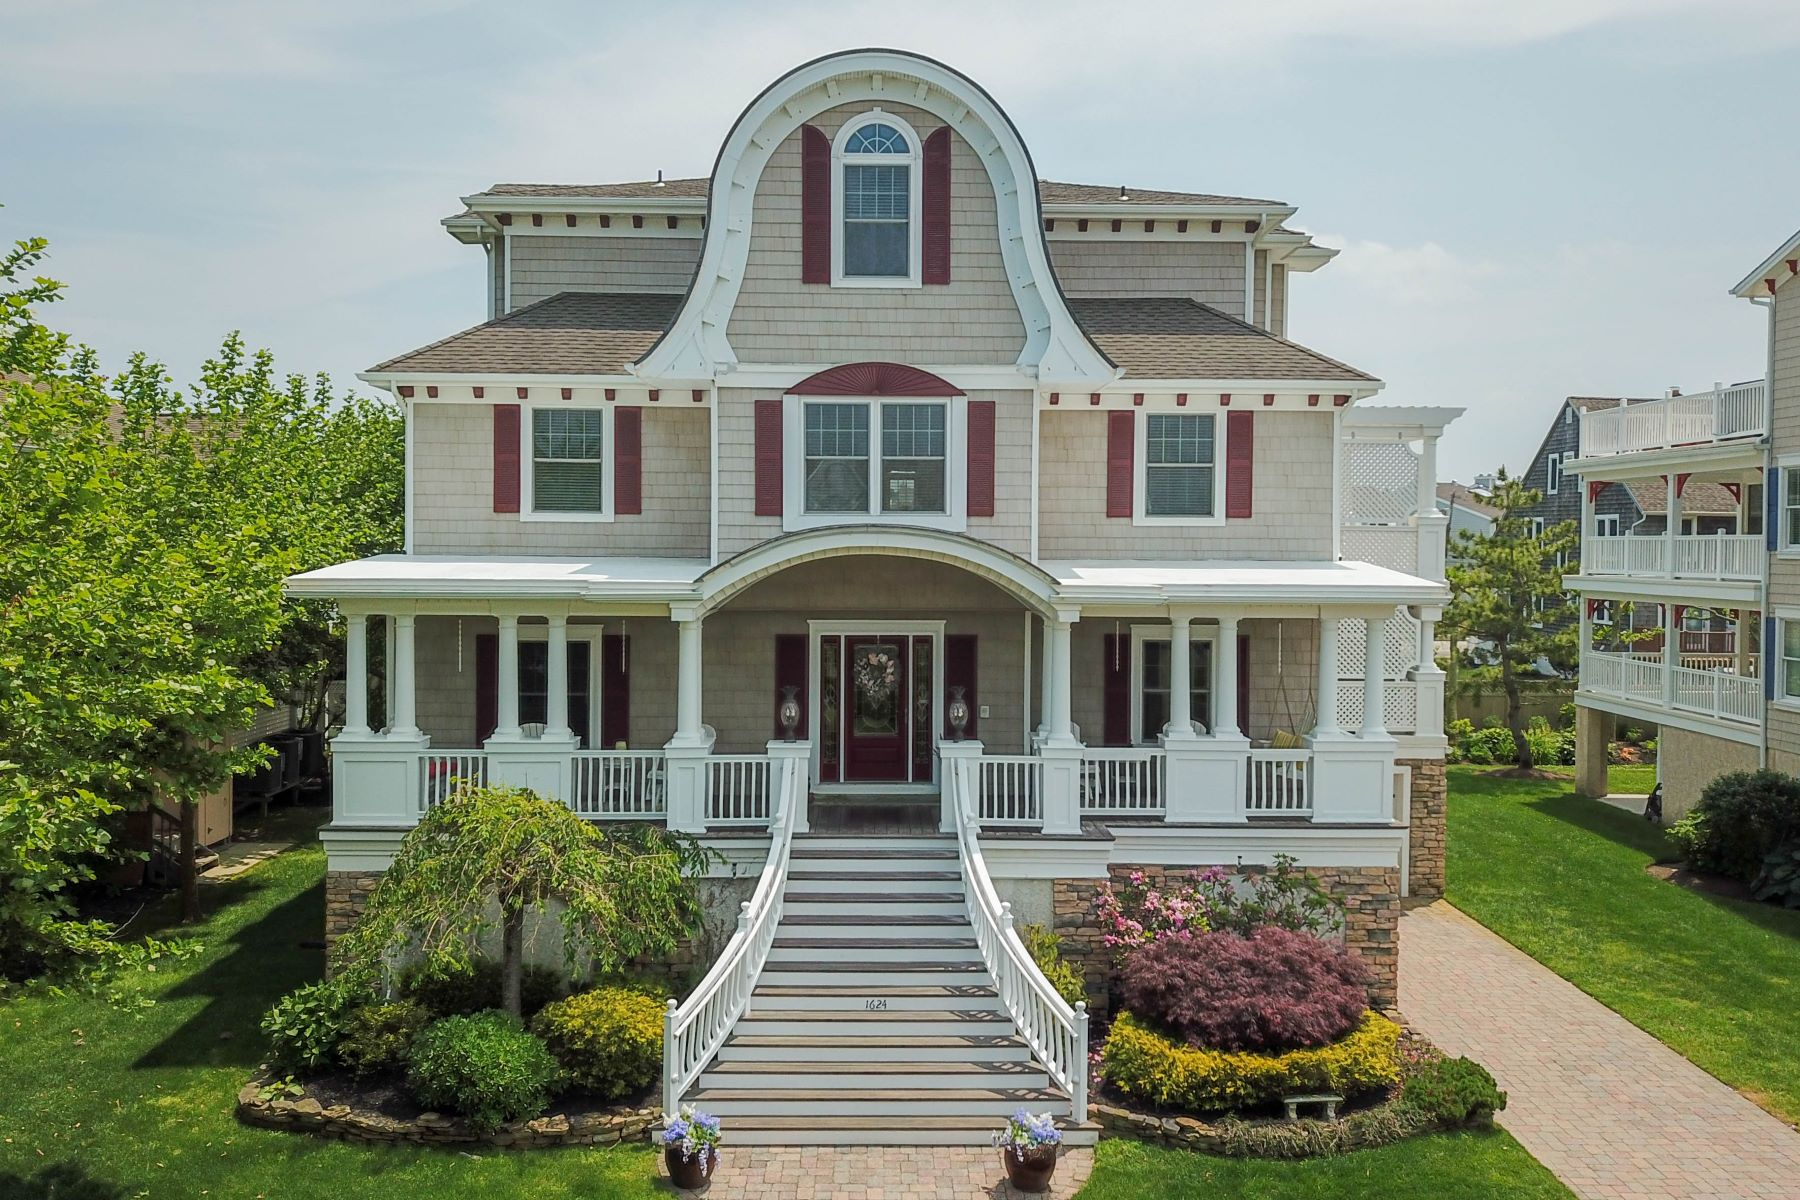 Single Family Homes for Sale at Luxurious Cape May Masterpiece 1624 New York Avenue Cape May, New Jersey 08204 United States